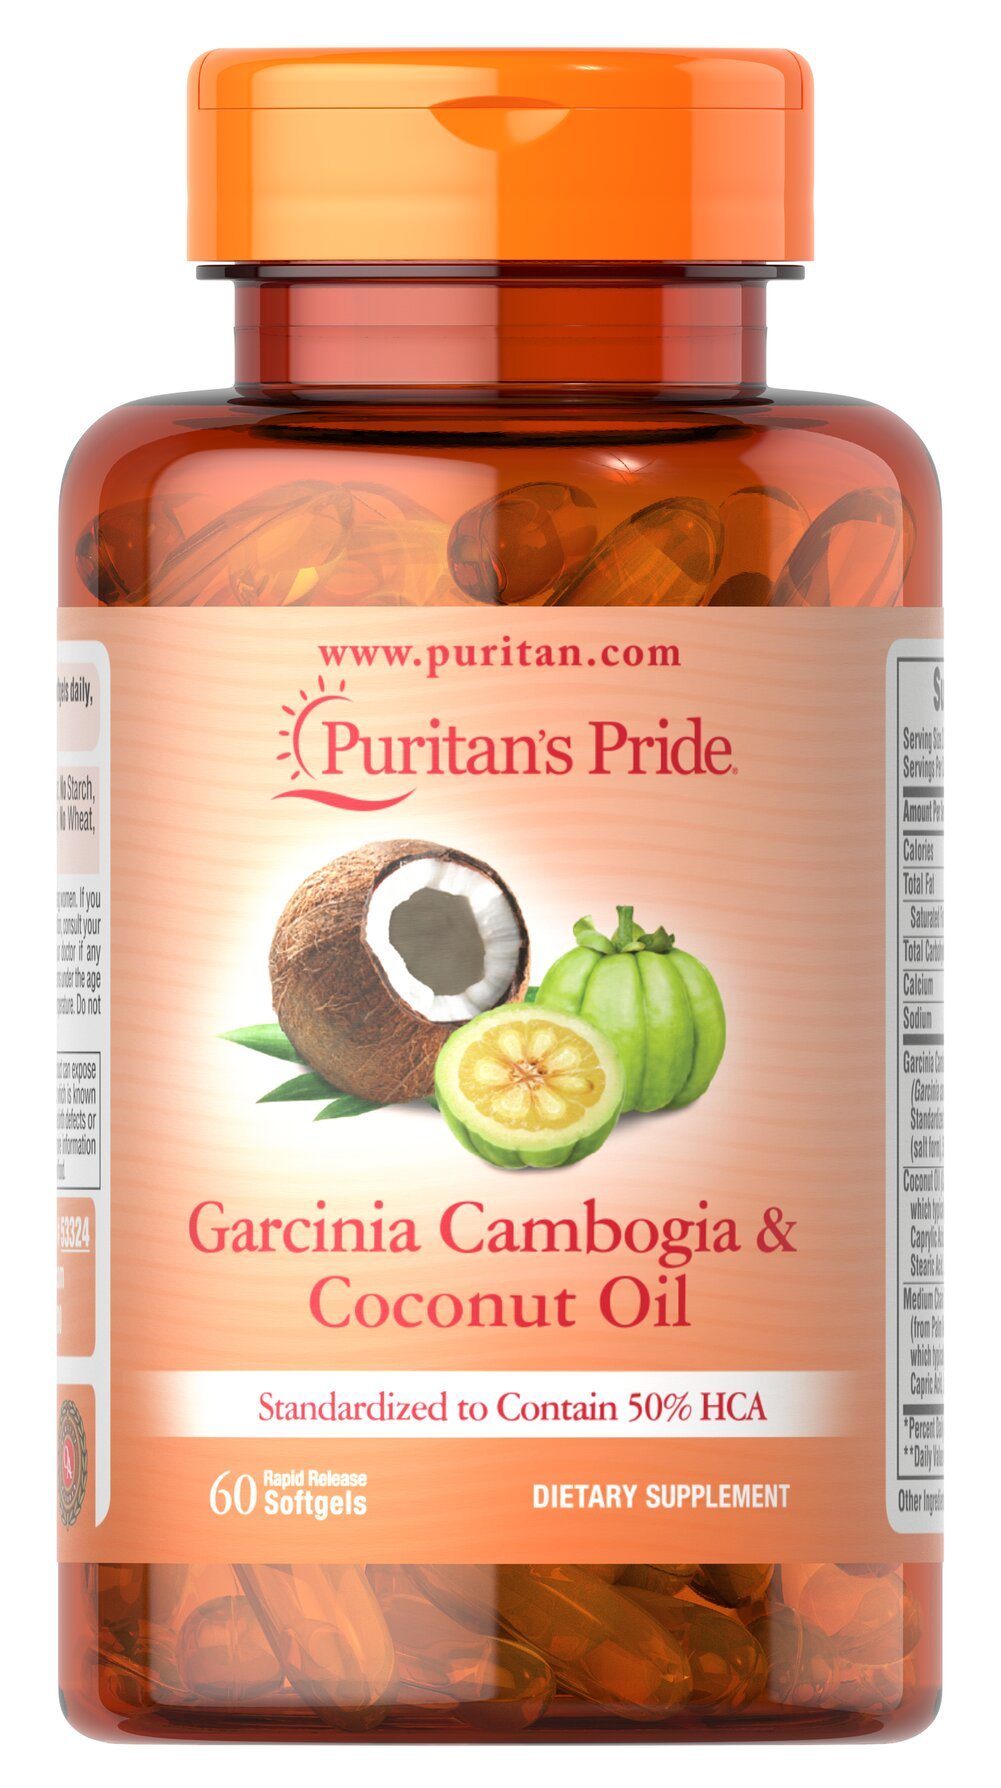 Garcinia Cambogia 500 mg plus Coconut Oil 500mg Thumbnail Alternate Bottle View